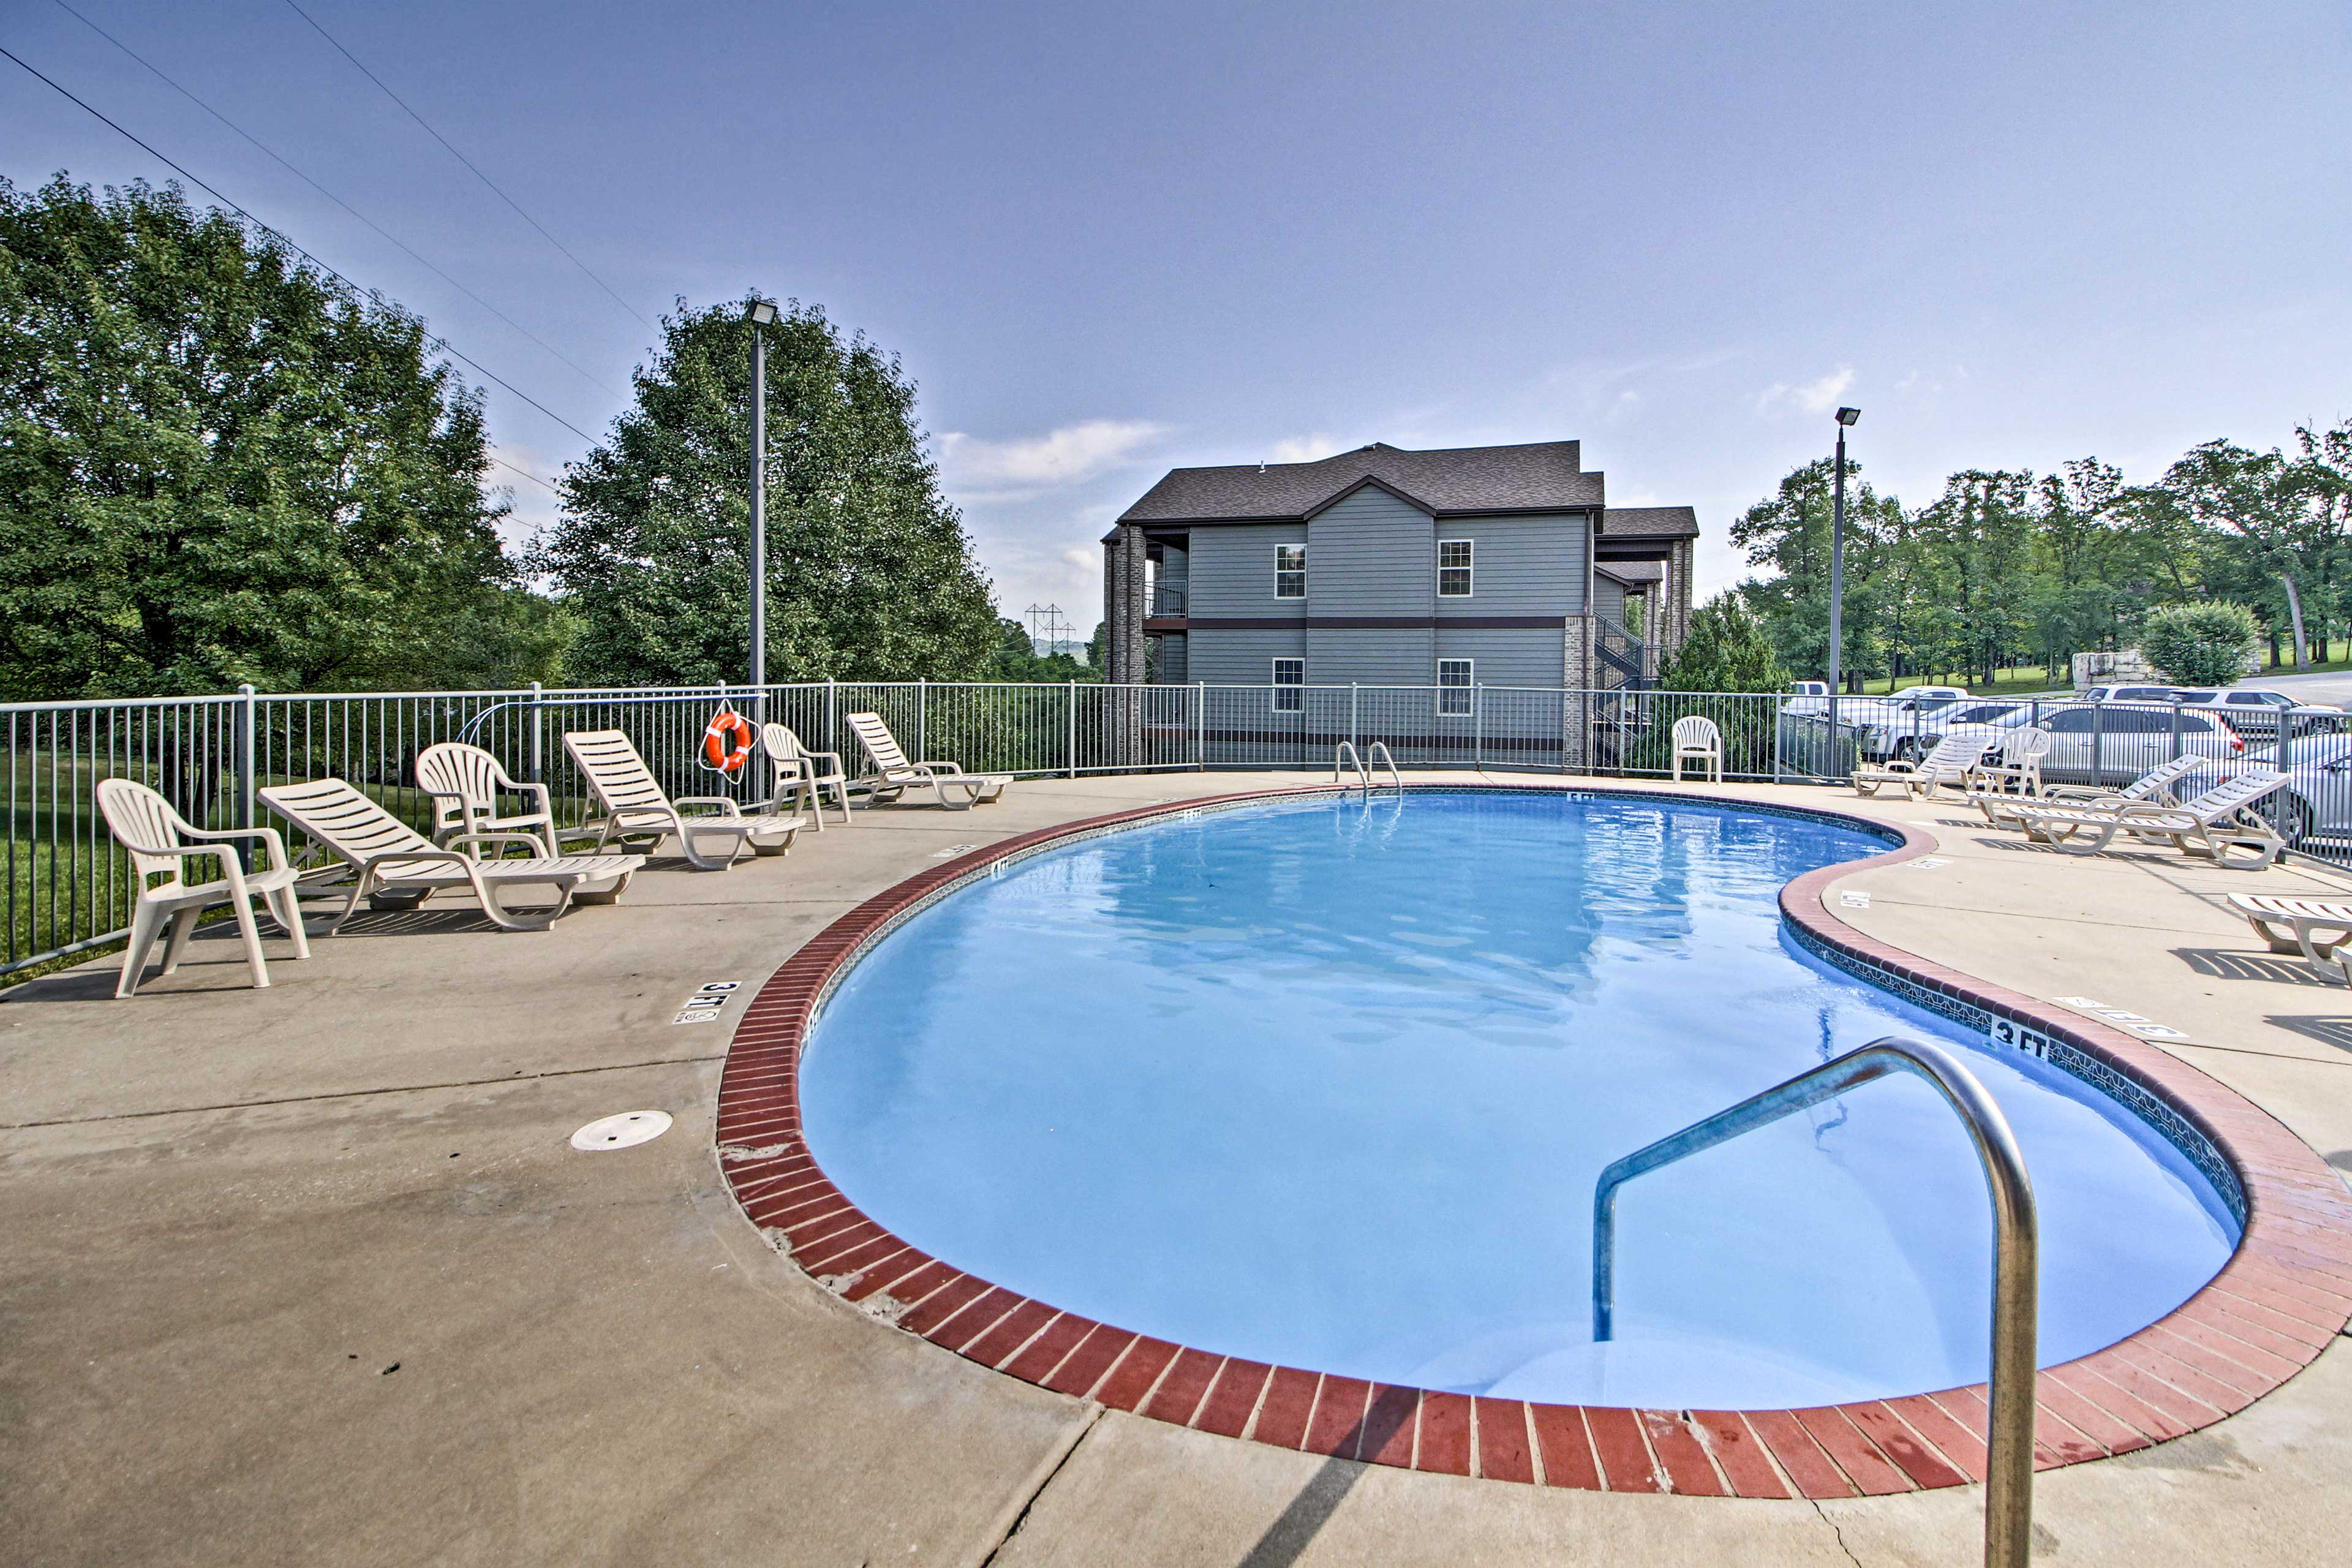 Spend a sunny afternoon out at the community pool.